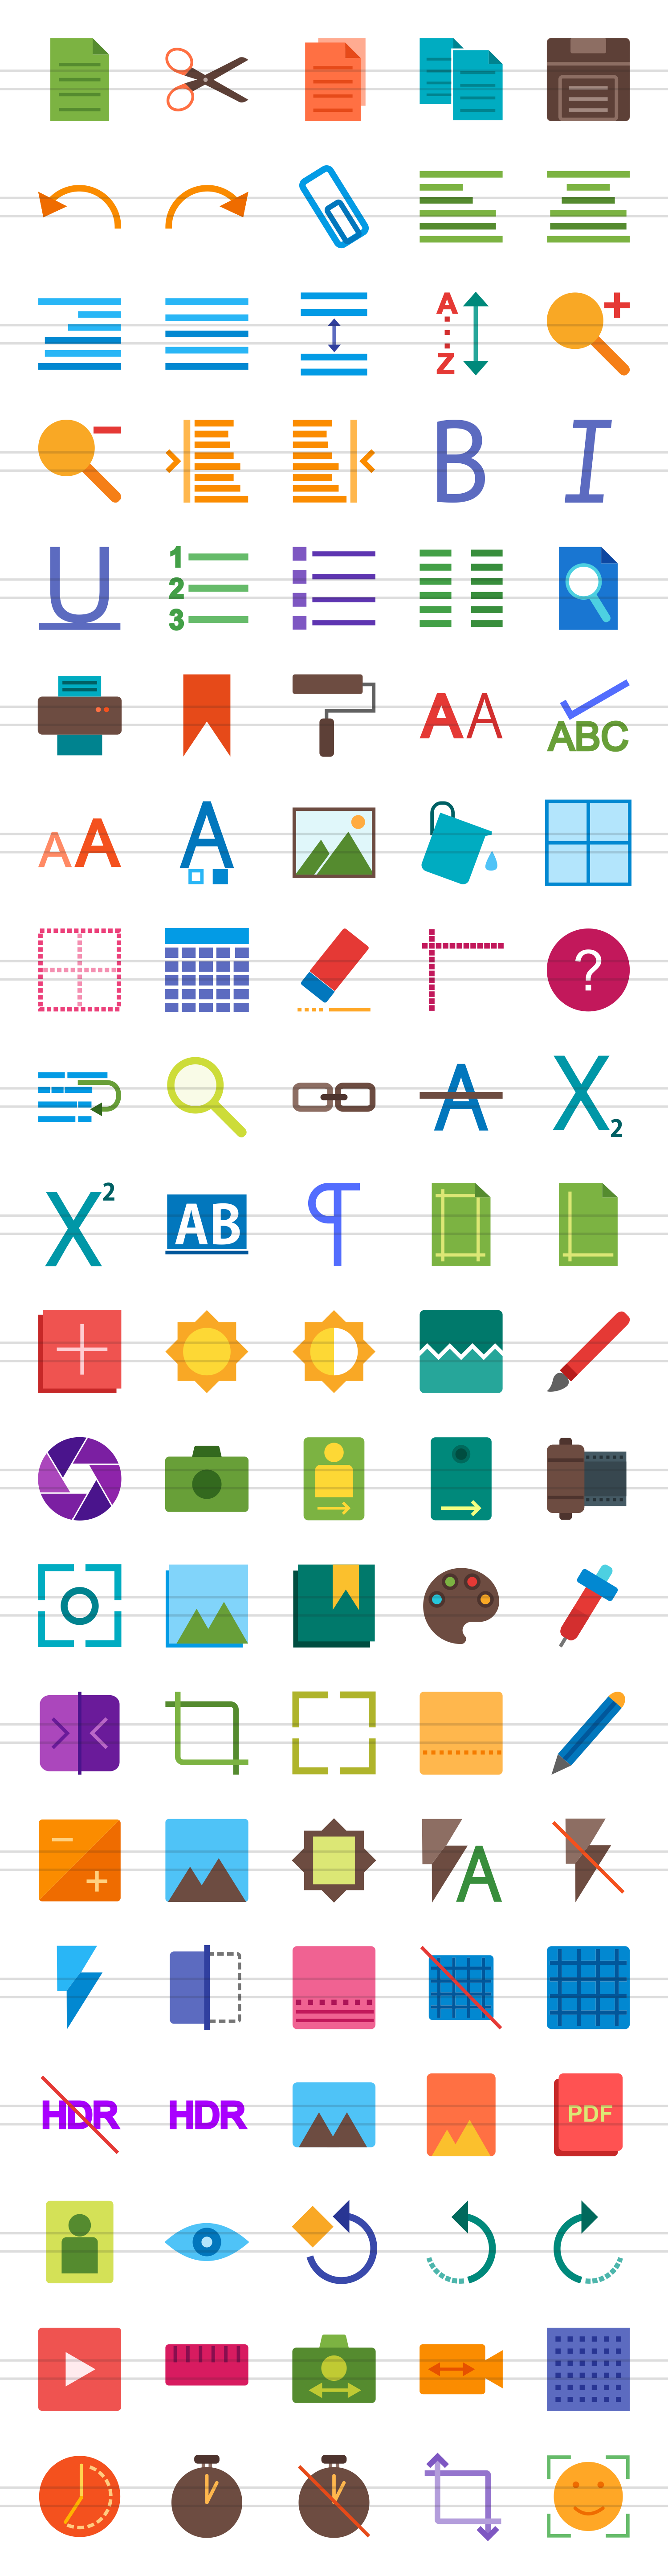 100 Photo & Text Editing Flat Icons example image 2